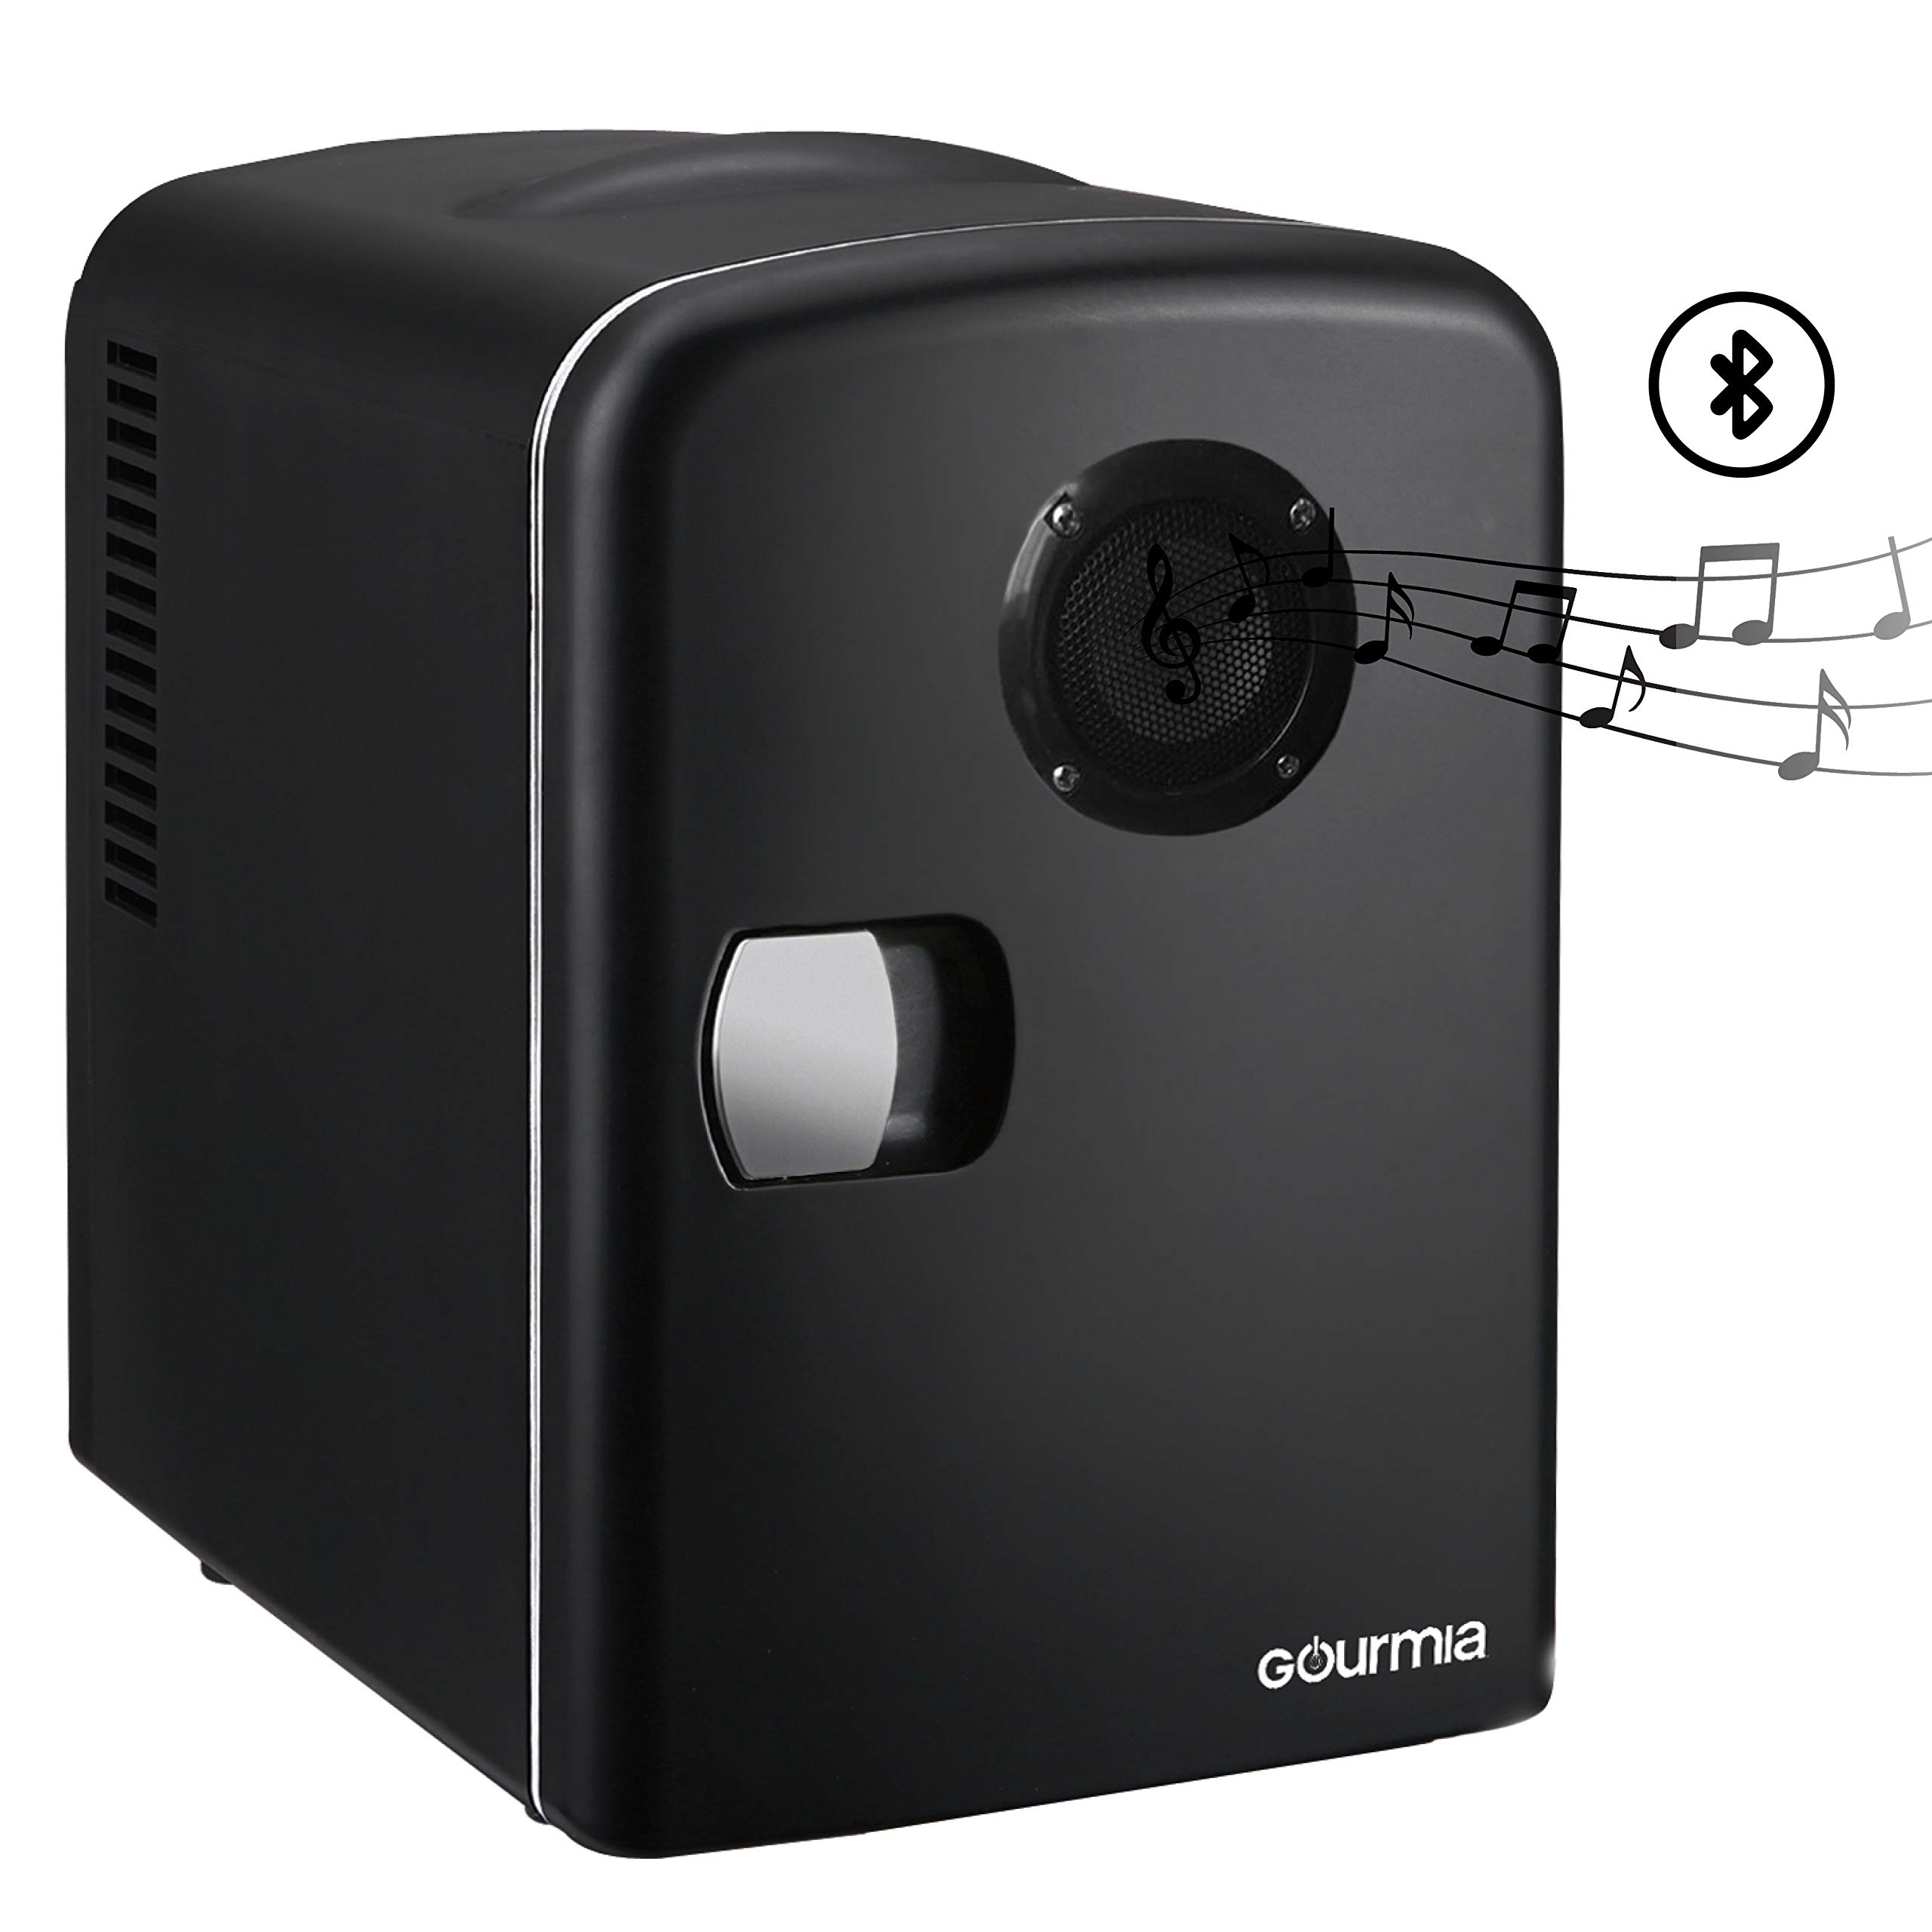 Gourmia GMF668 Thermoelectric Mini Fridge Cooler and Warmer - With Bluetooth Speaker - 4 Liter/6 Can - For Home, Office, Car, Dorm or Boat - Compact & Portable - AC & DC Power Cords - Black